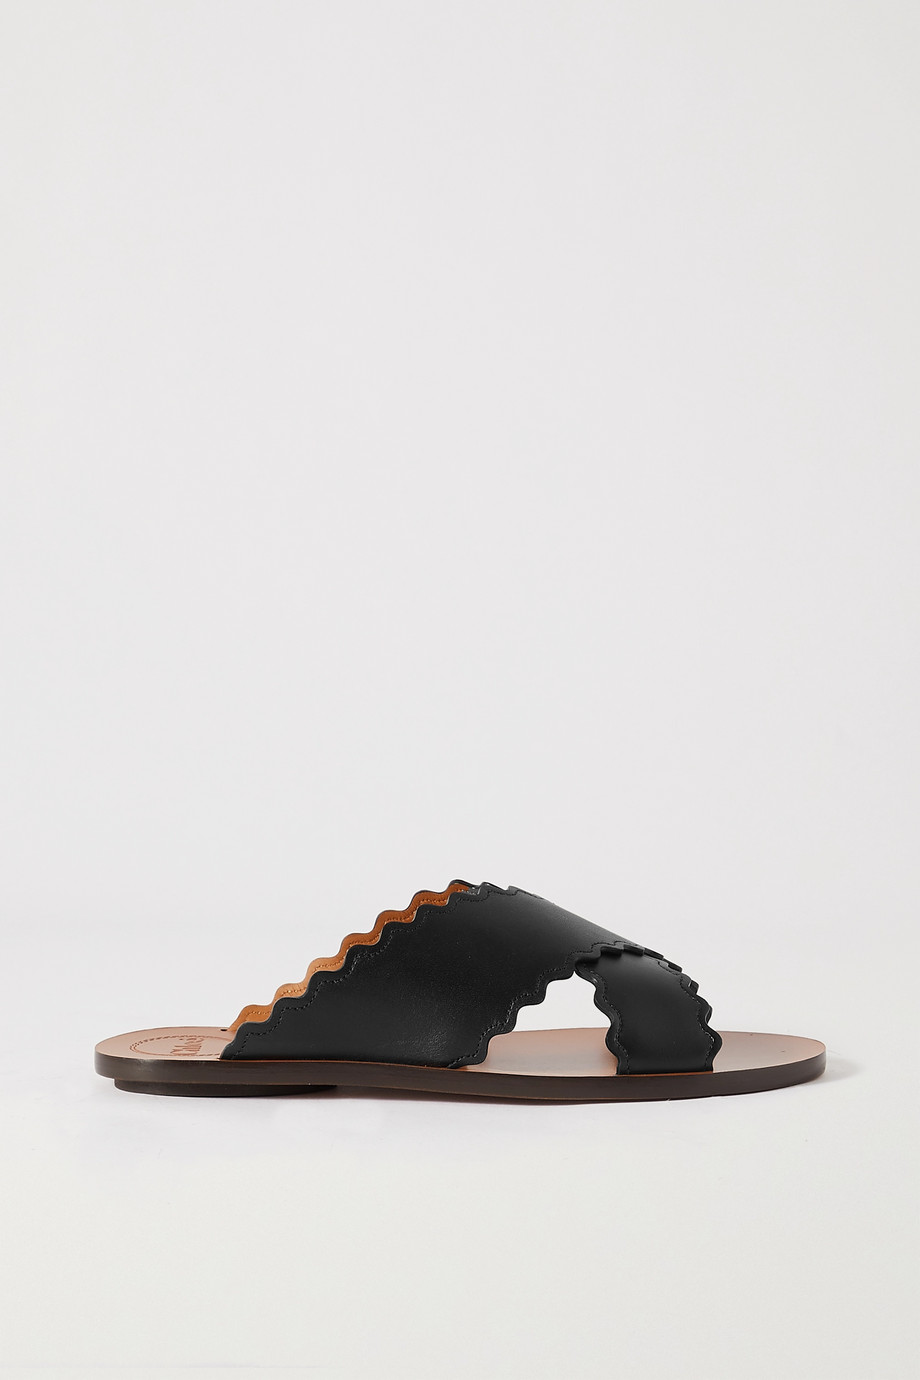 Chloé Ingrid scalloped leather slides